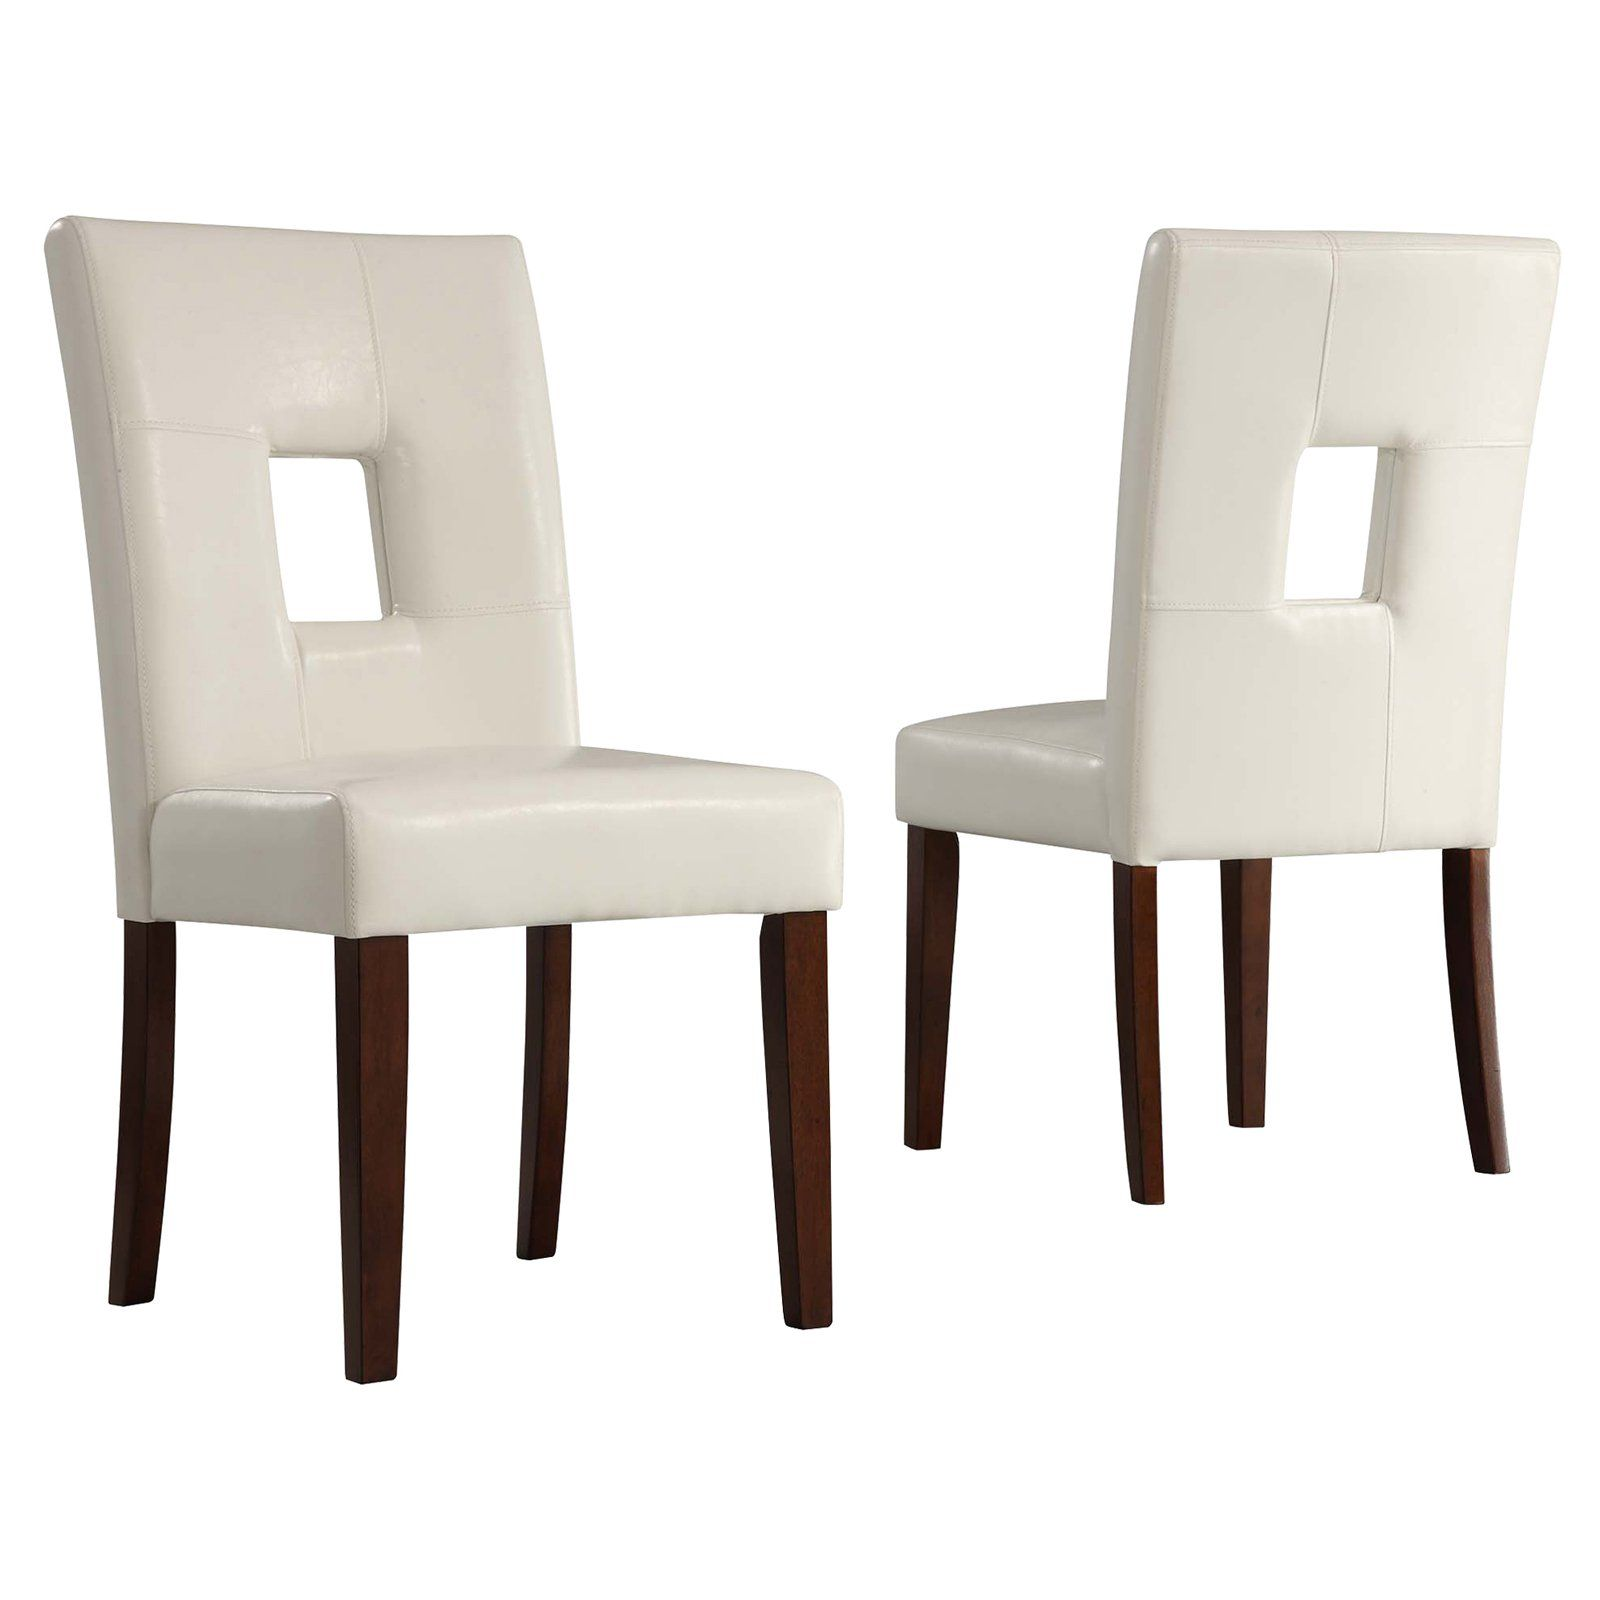 Weston Home Madelin Keyhole Dining Chair Set Of 2 Dining